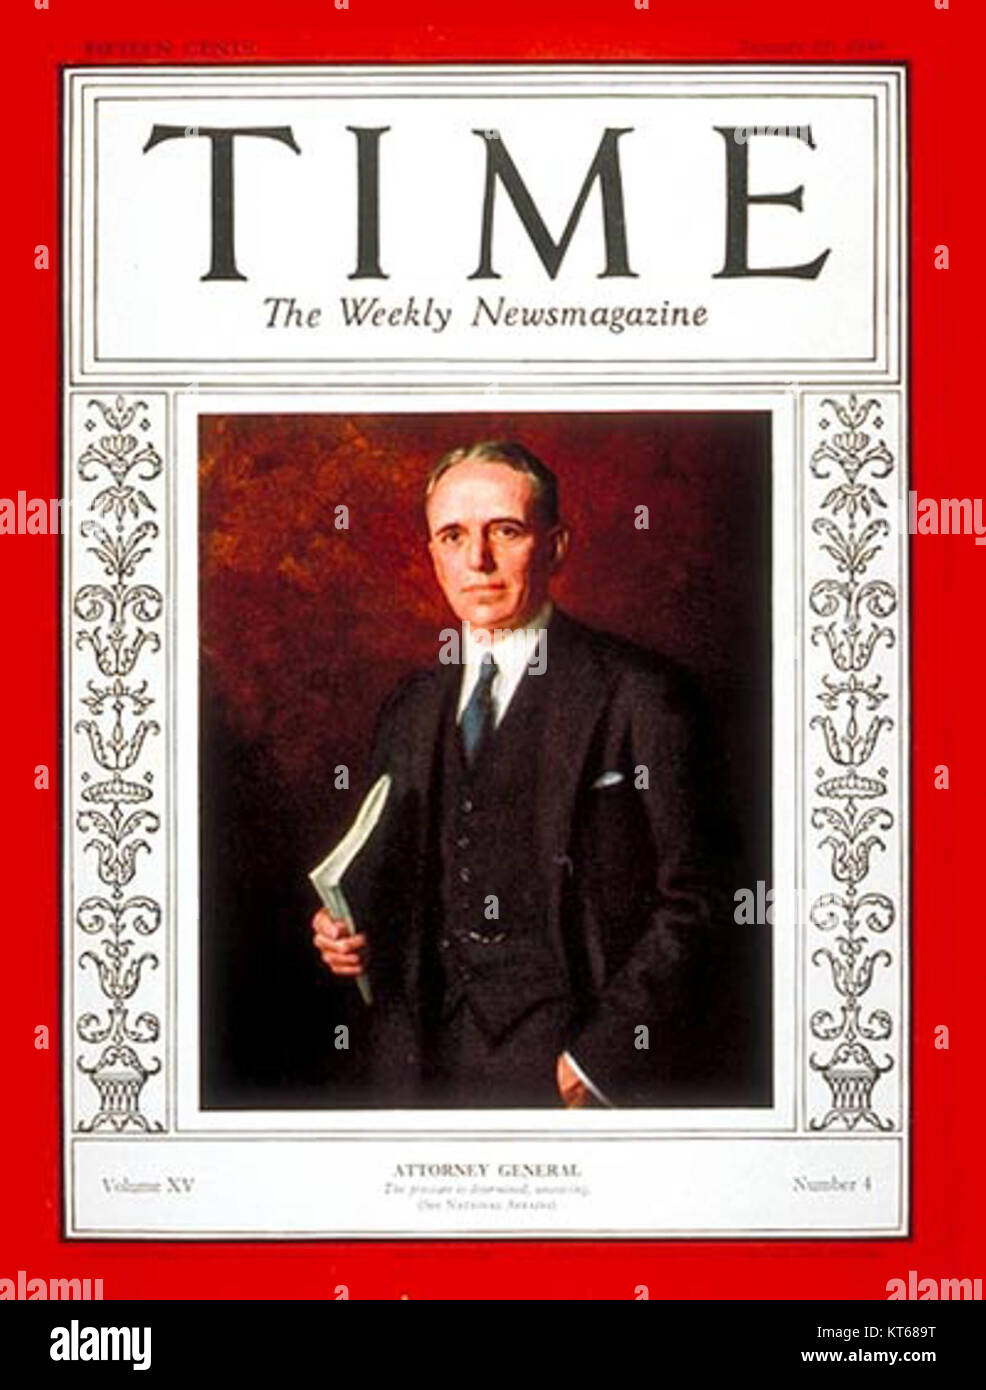 Time-magazine-cover-william-mitchell - Stock Image